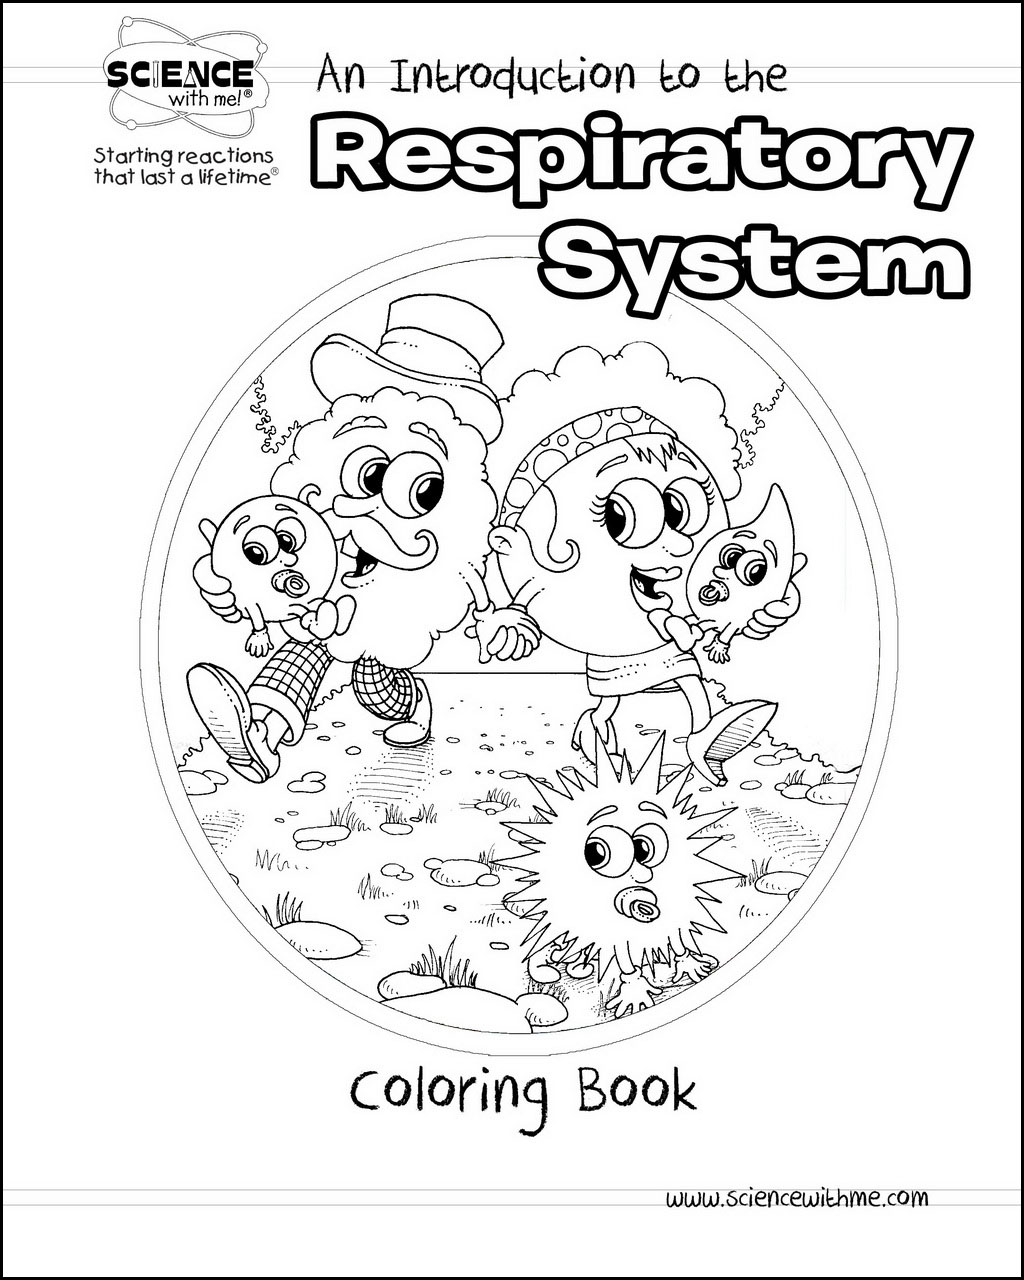 Respiratory System Coloring Book